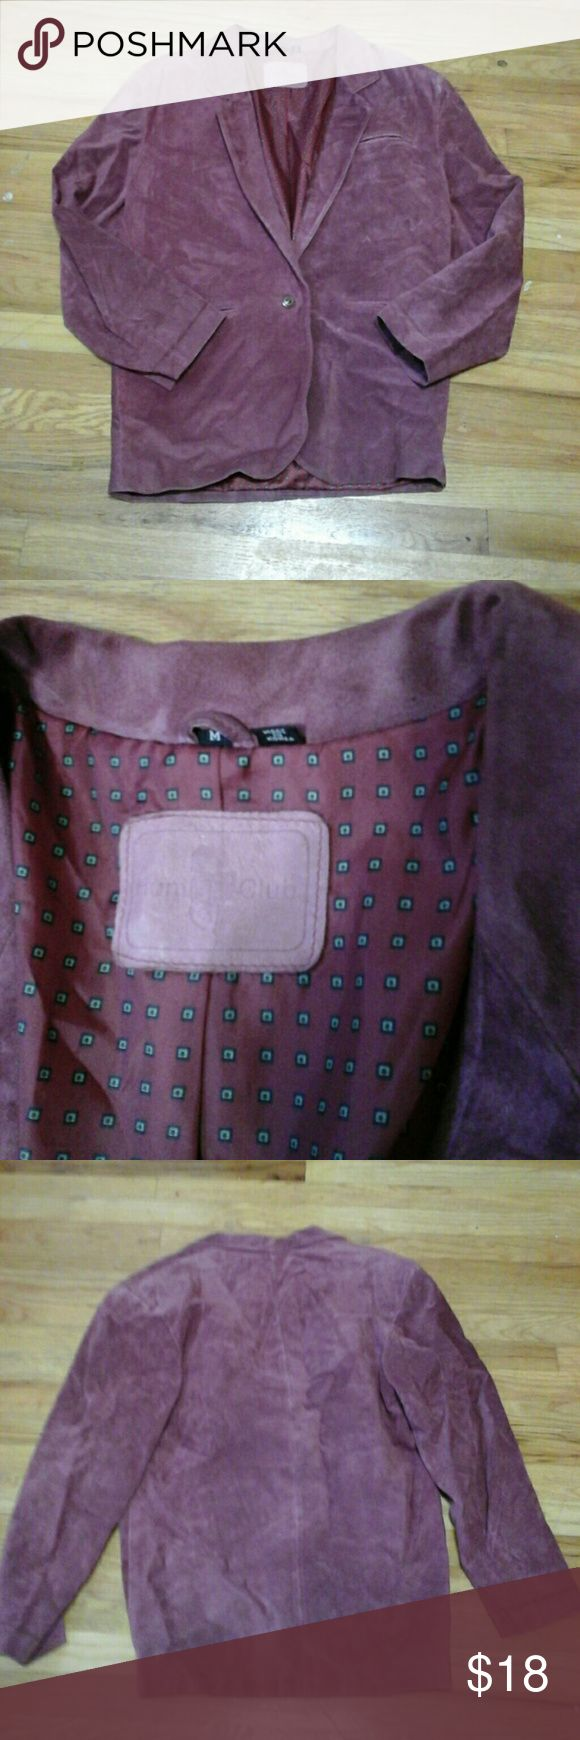 Maroon suede leather coat by Hunt Club If lavender is your color you will stand out in this!  In good vintage condition. Hunt Club Jackets & Coats